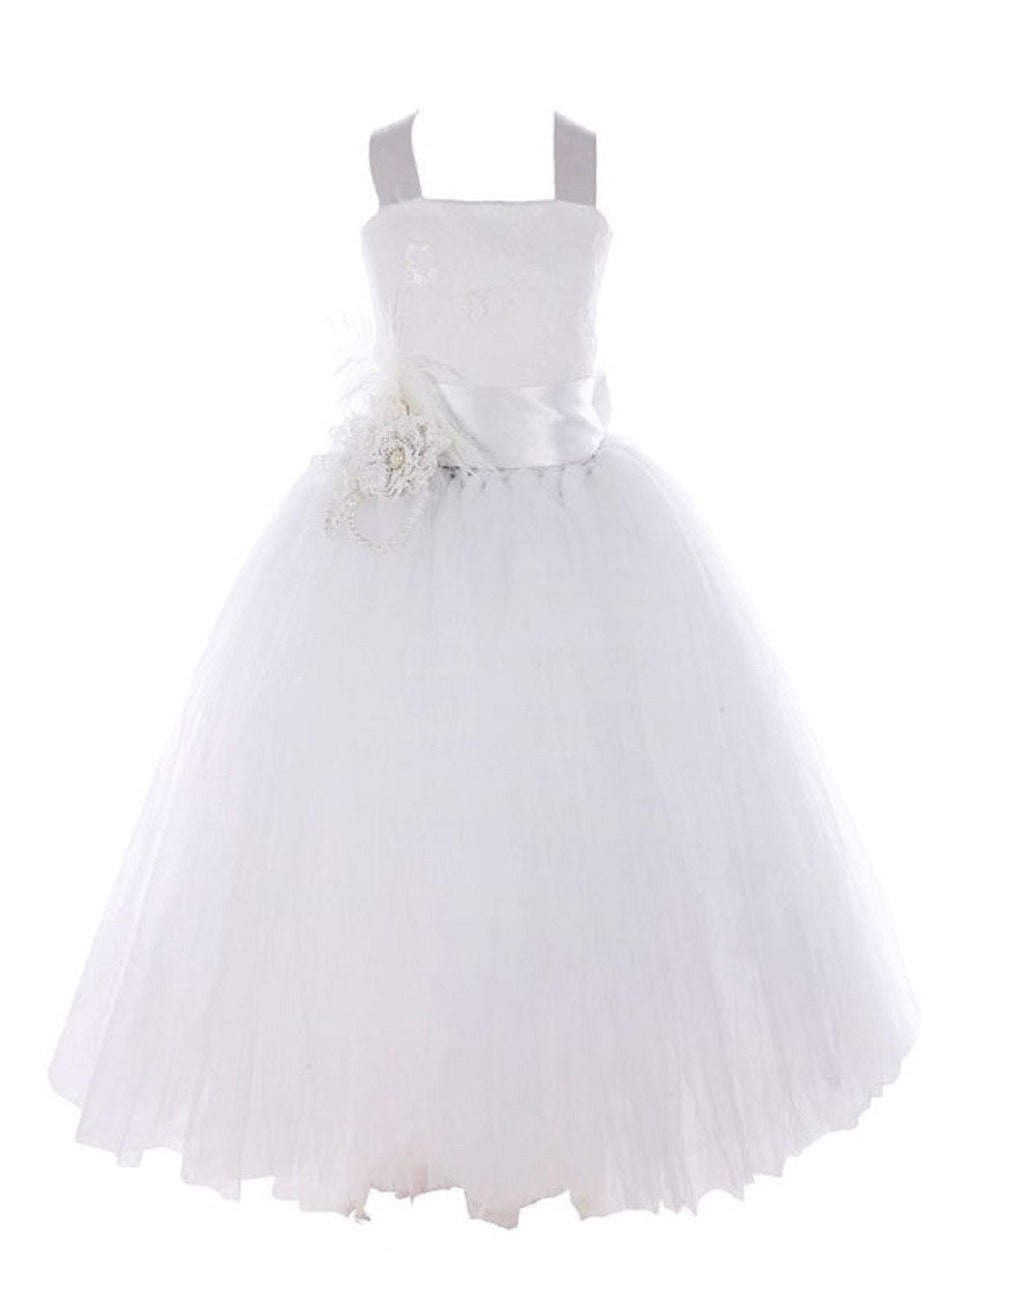 Fairy Tutu Flower Girl Dress White